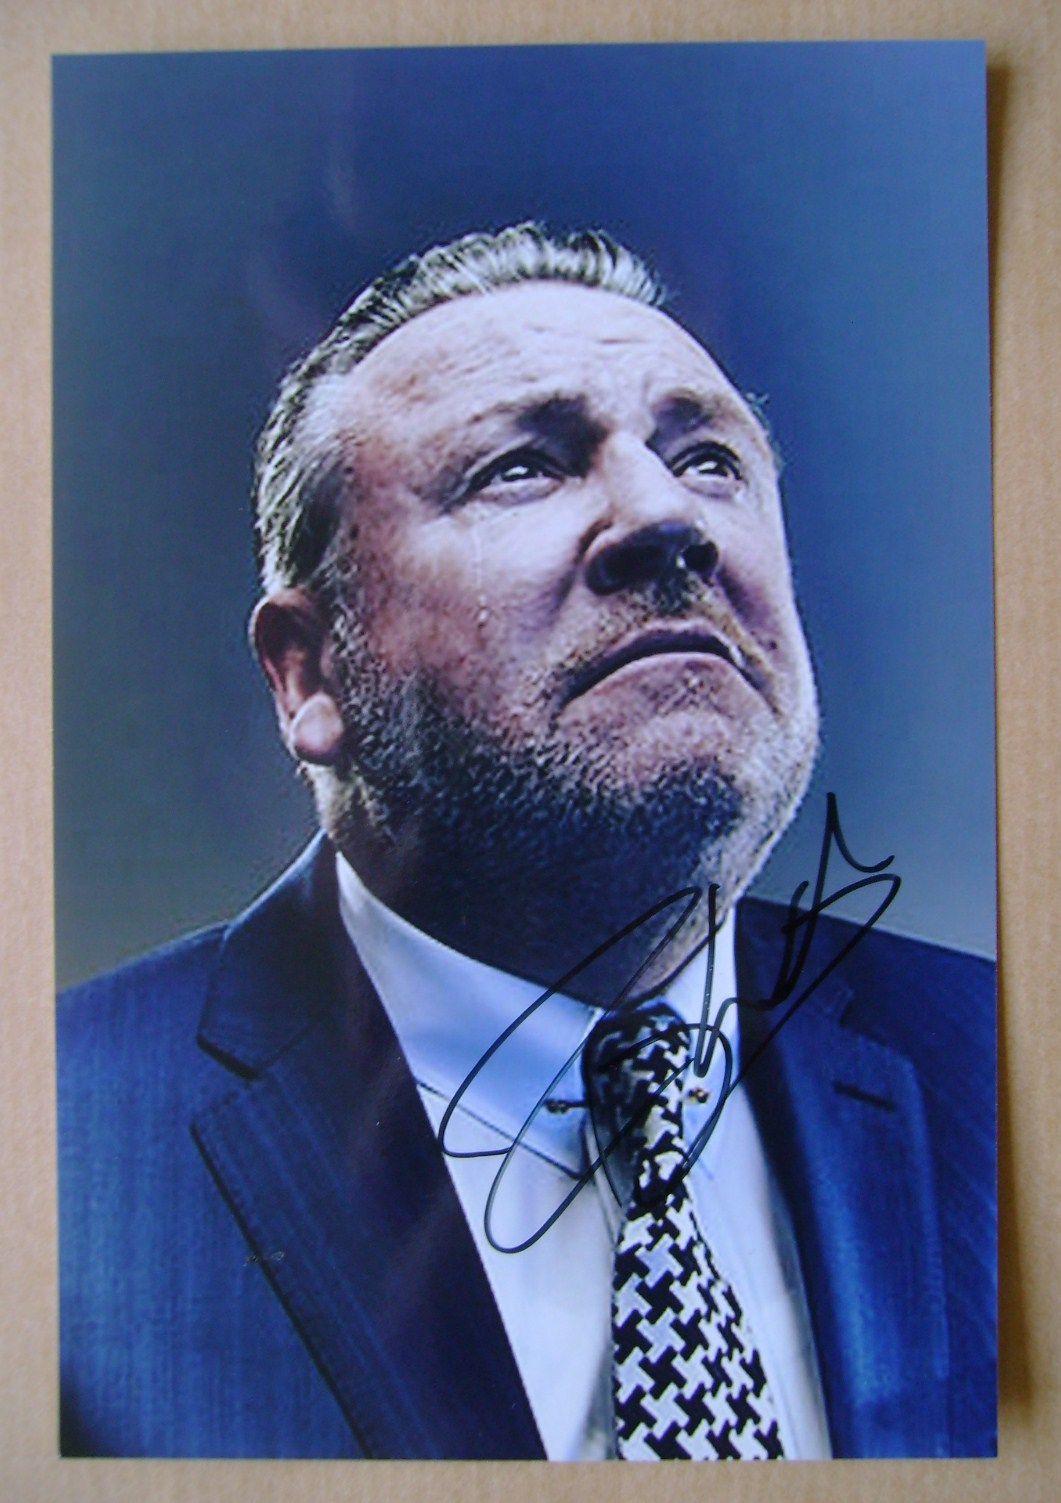 Ray Winstone autograph (hand-signed photograph)